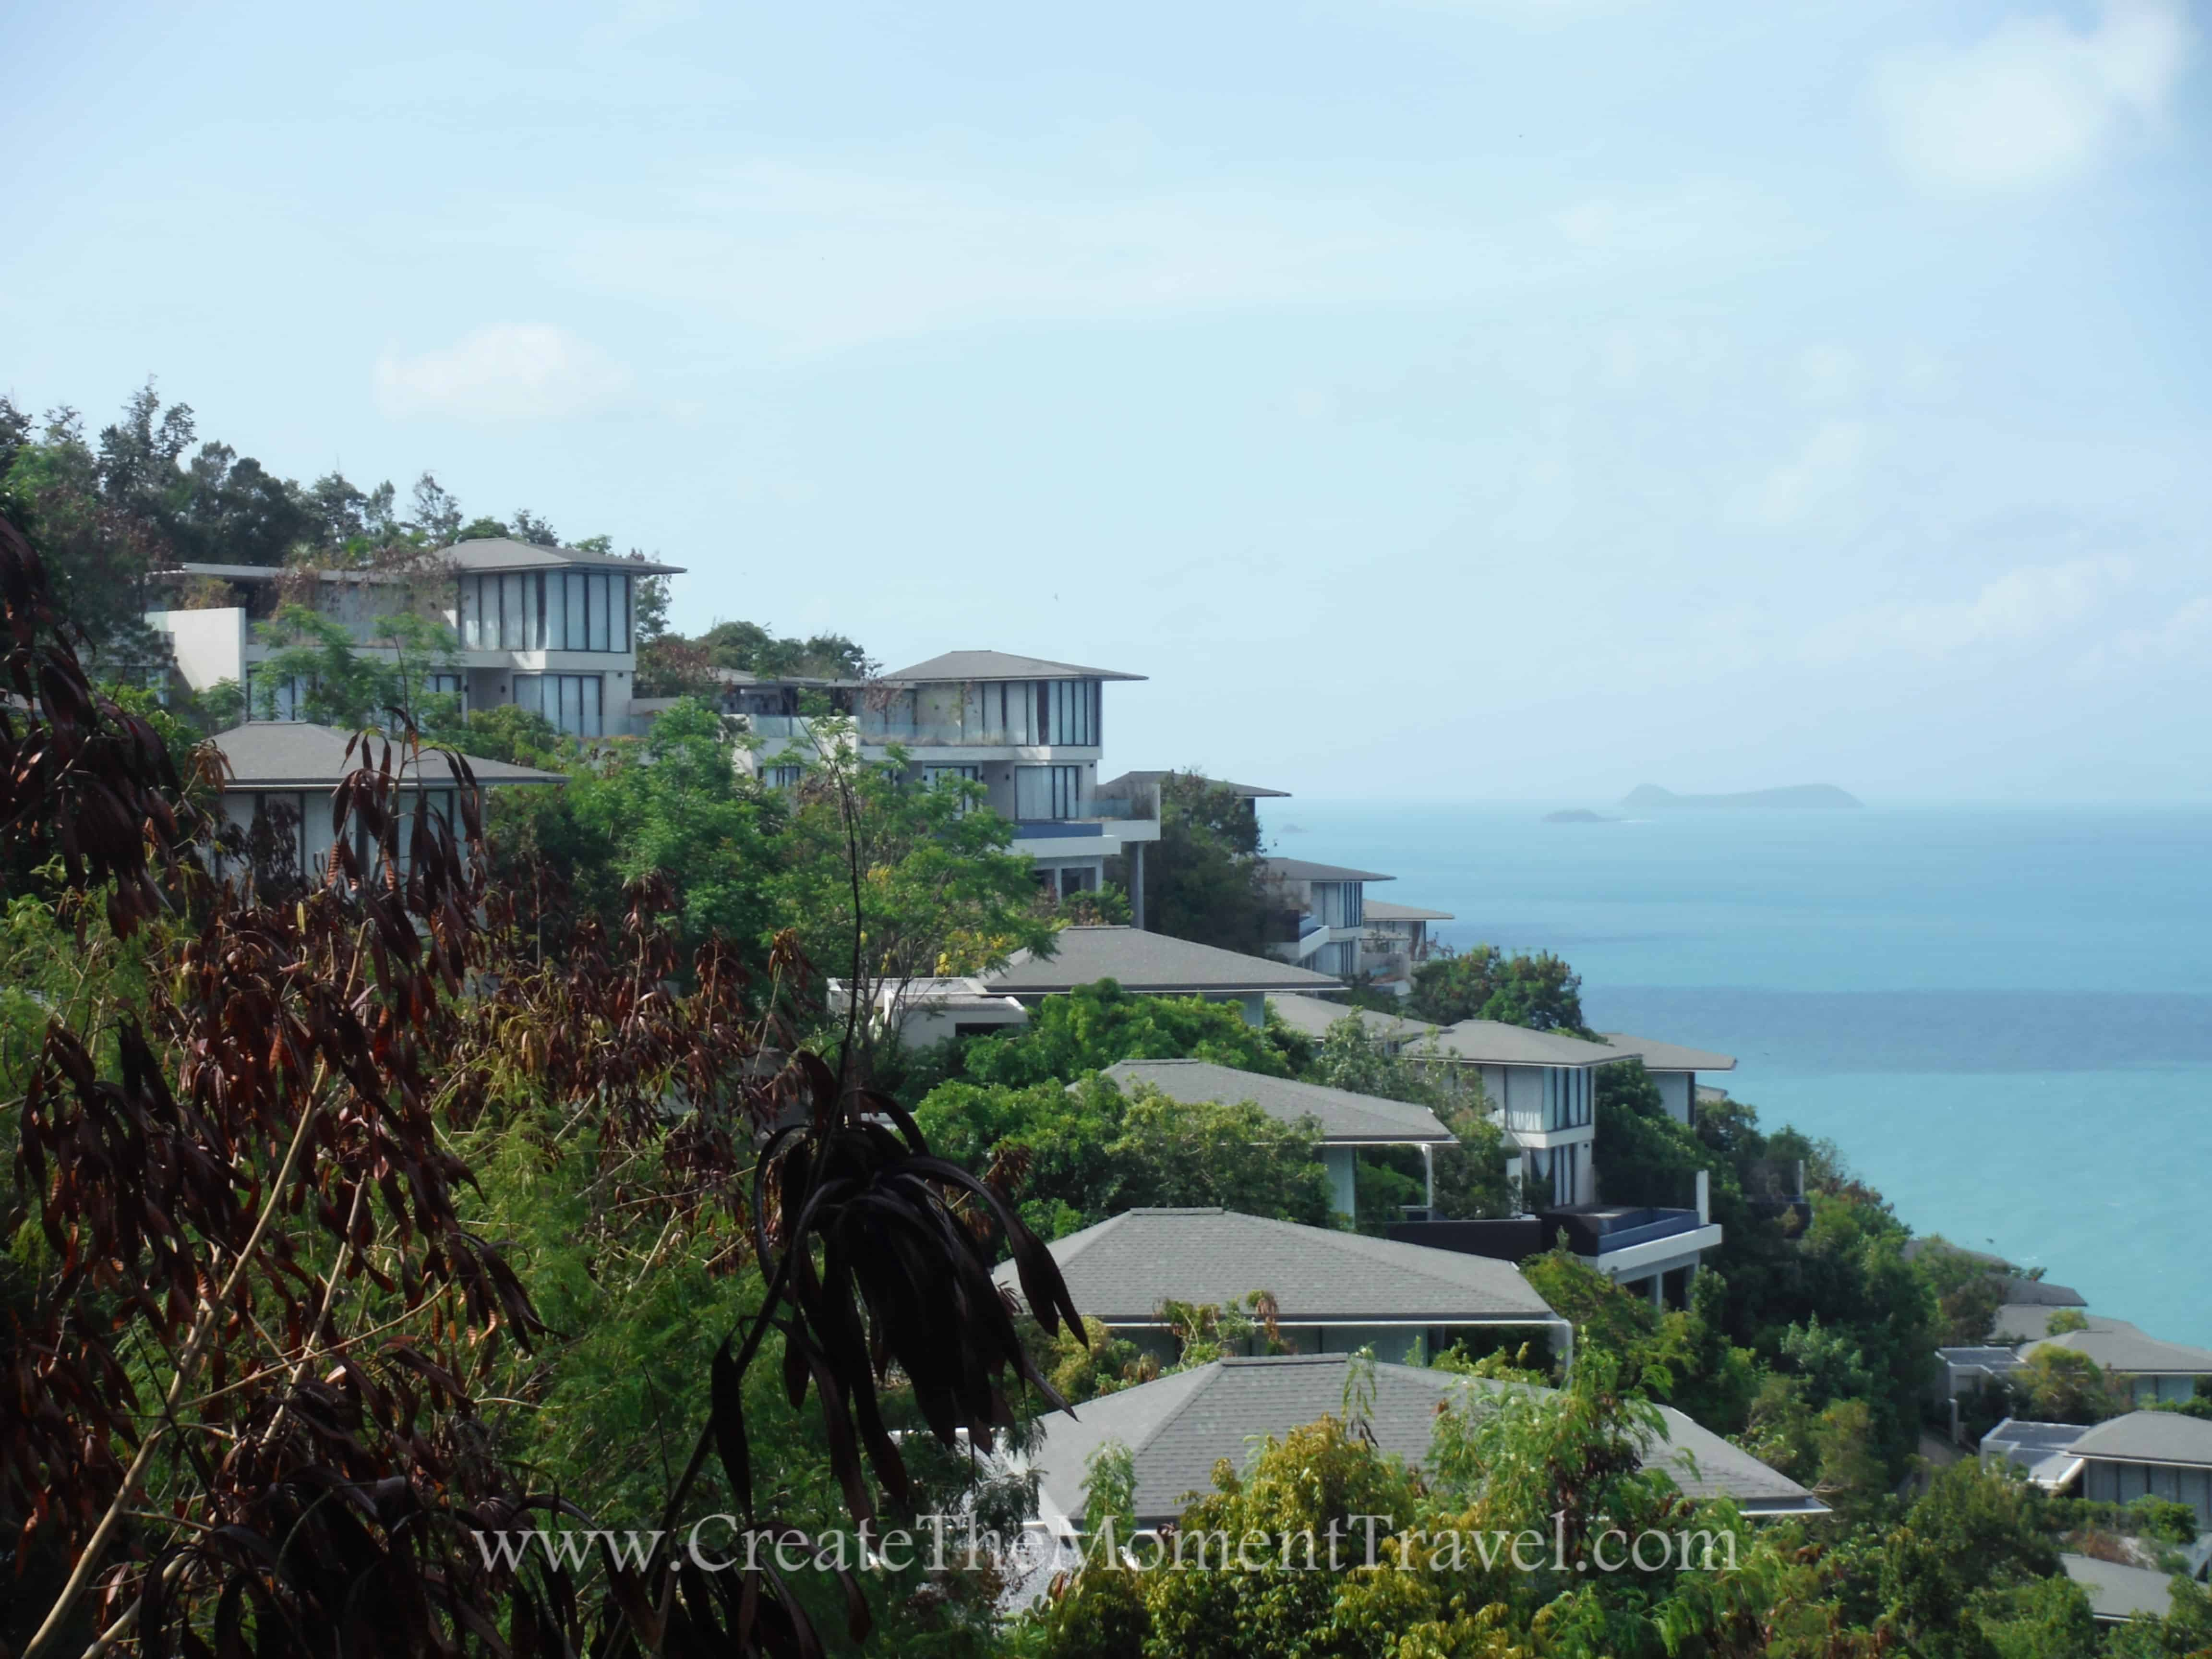 Villas at Koh Samui Thailand by Create The Moment Travel